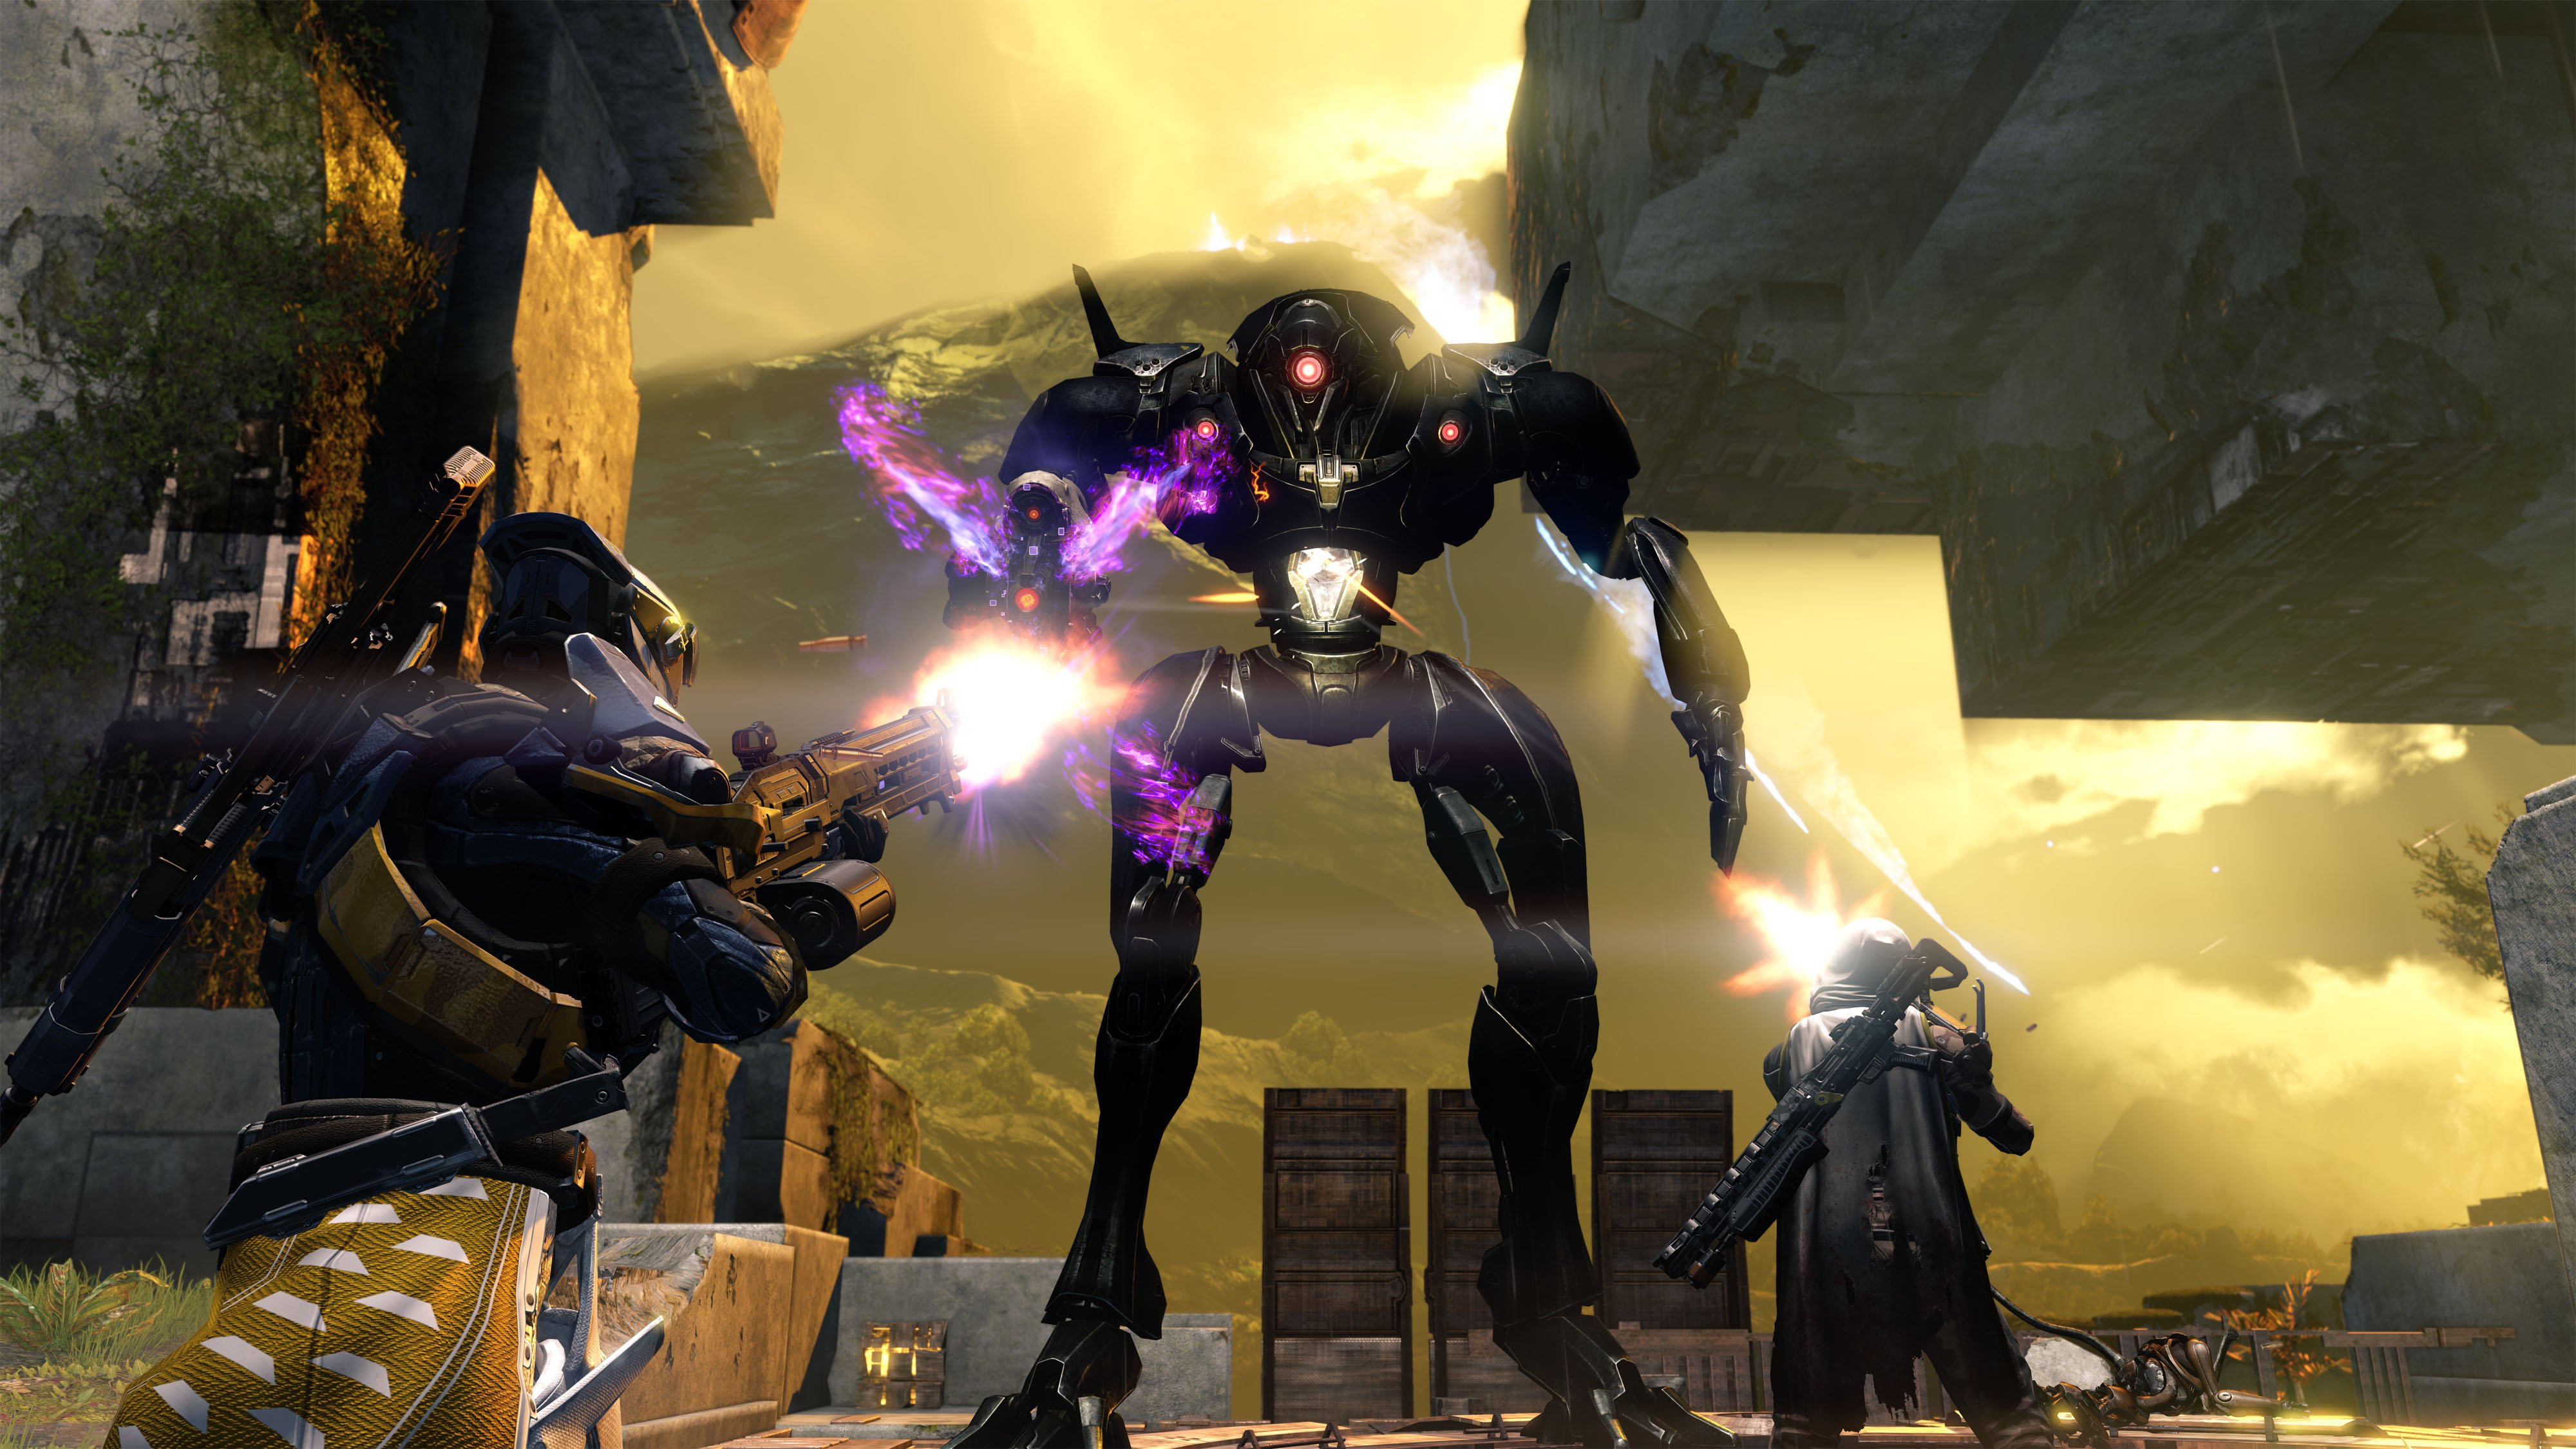 DESTINY sci-fi shooter fps action fighting futuristic warrior rpg mmo online artwork